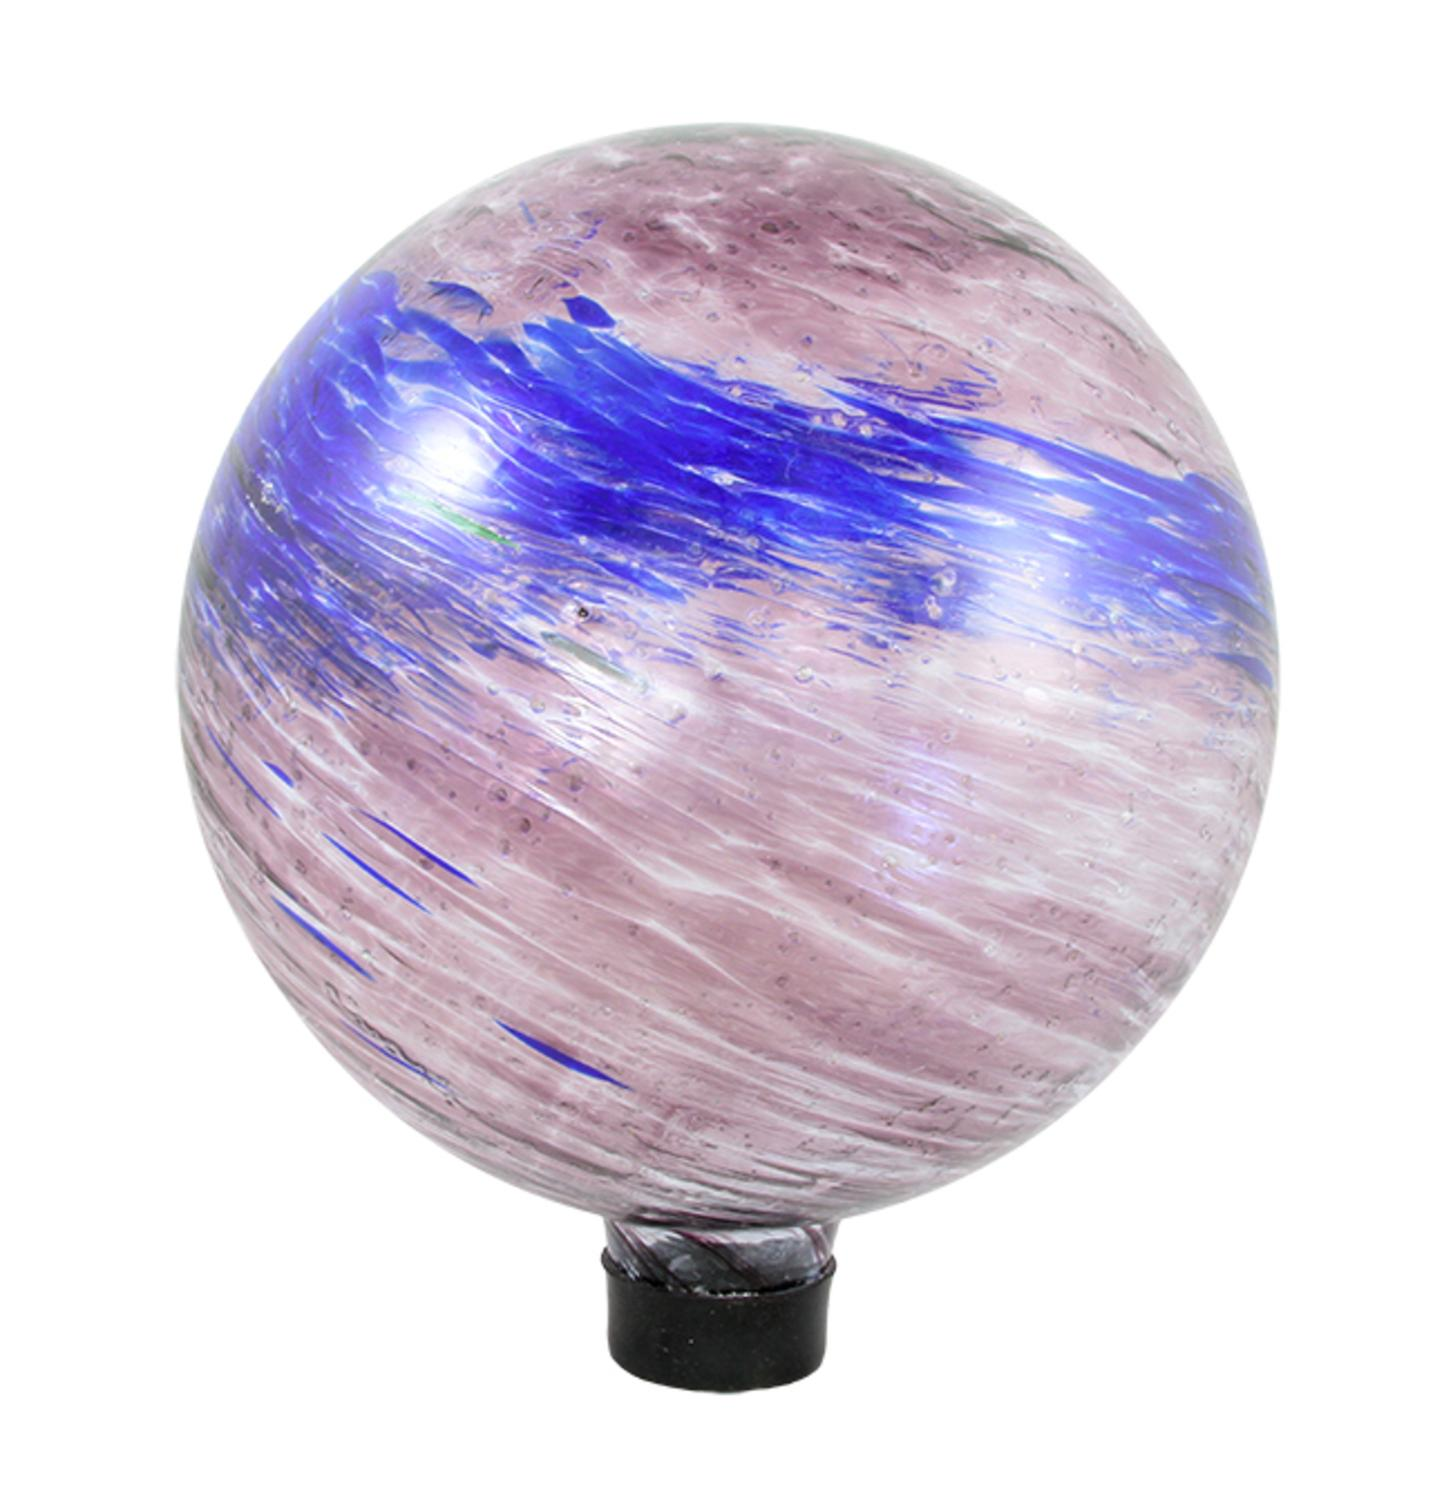 "10"" Dusky Rose Pink and Blue Swirled Glass Outdoor Patio Garden Gazing Ball"